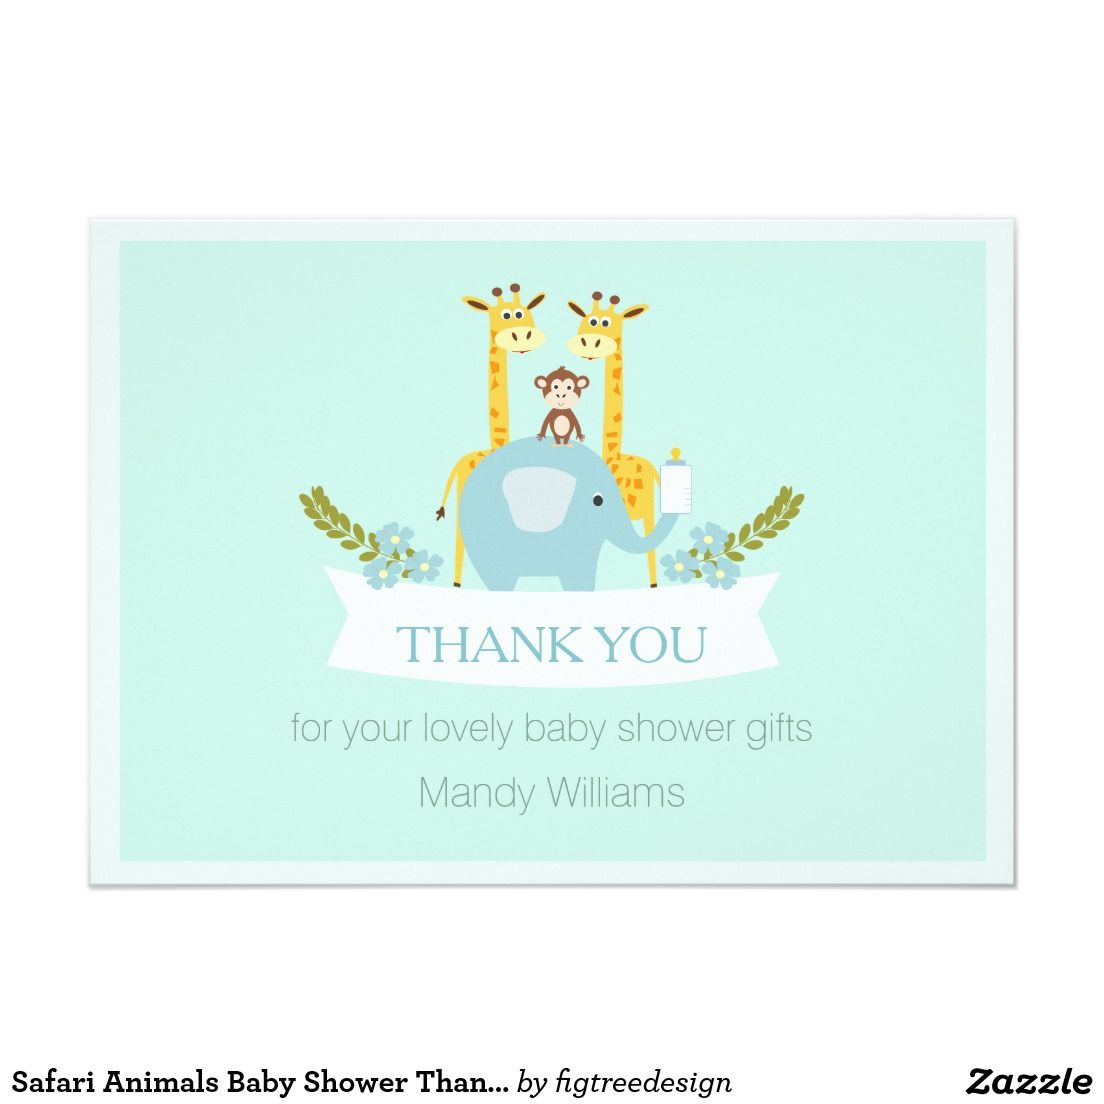 Full Size of Baby Shower:72+ Rousing Baby Shower Thank You Cards Picture Ideas Baby Shower Drinks With Fiesta De Baby Shower Plus Baby Shower Food Boy Together With Baby Shower Venues Near Me